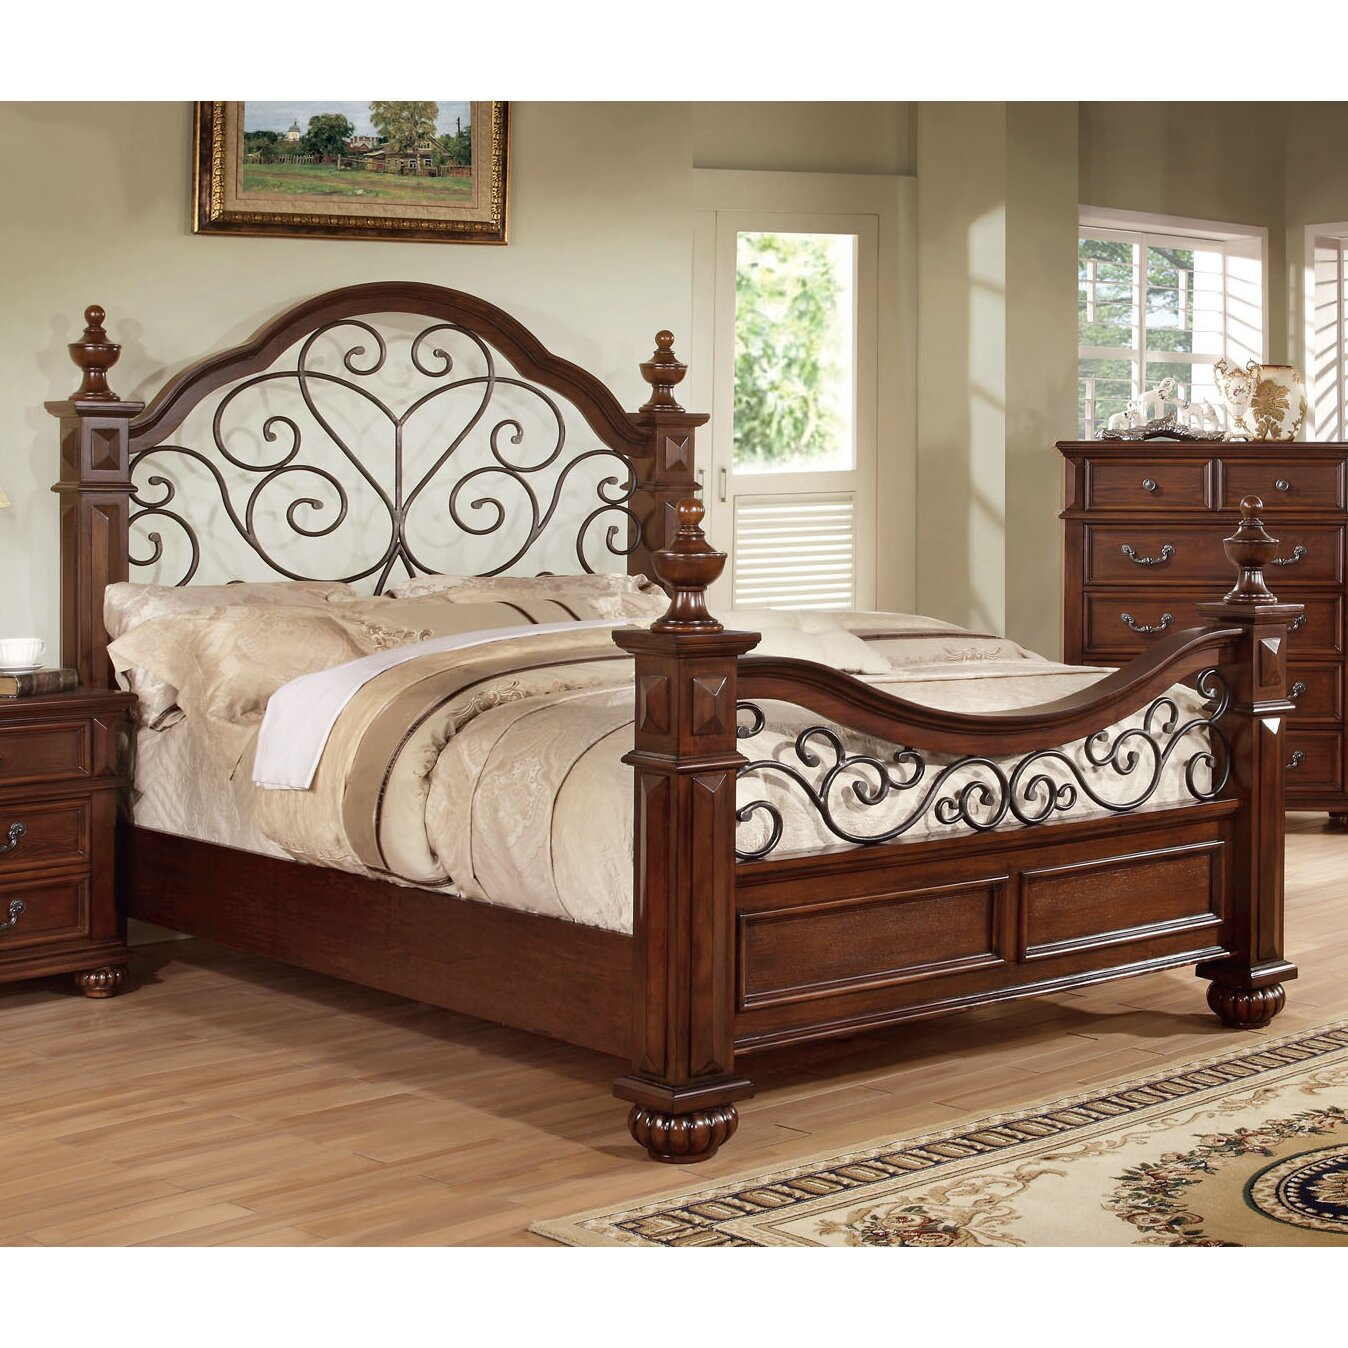 Hokku designs lorrenzia platform bed reviews wayfair for Bedroom designs with four poster beds